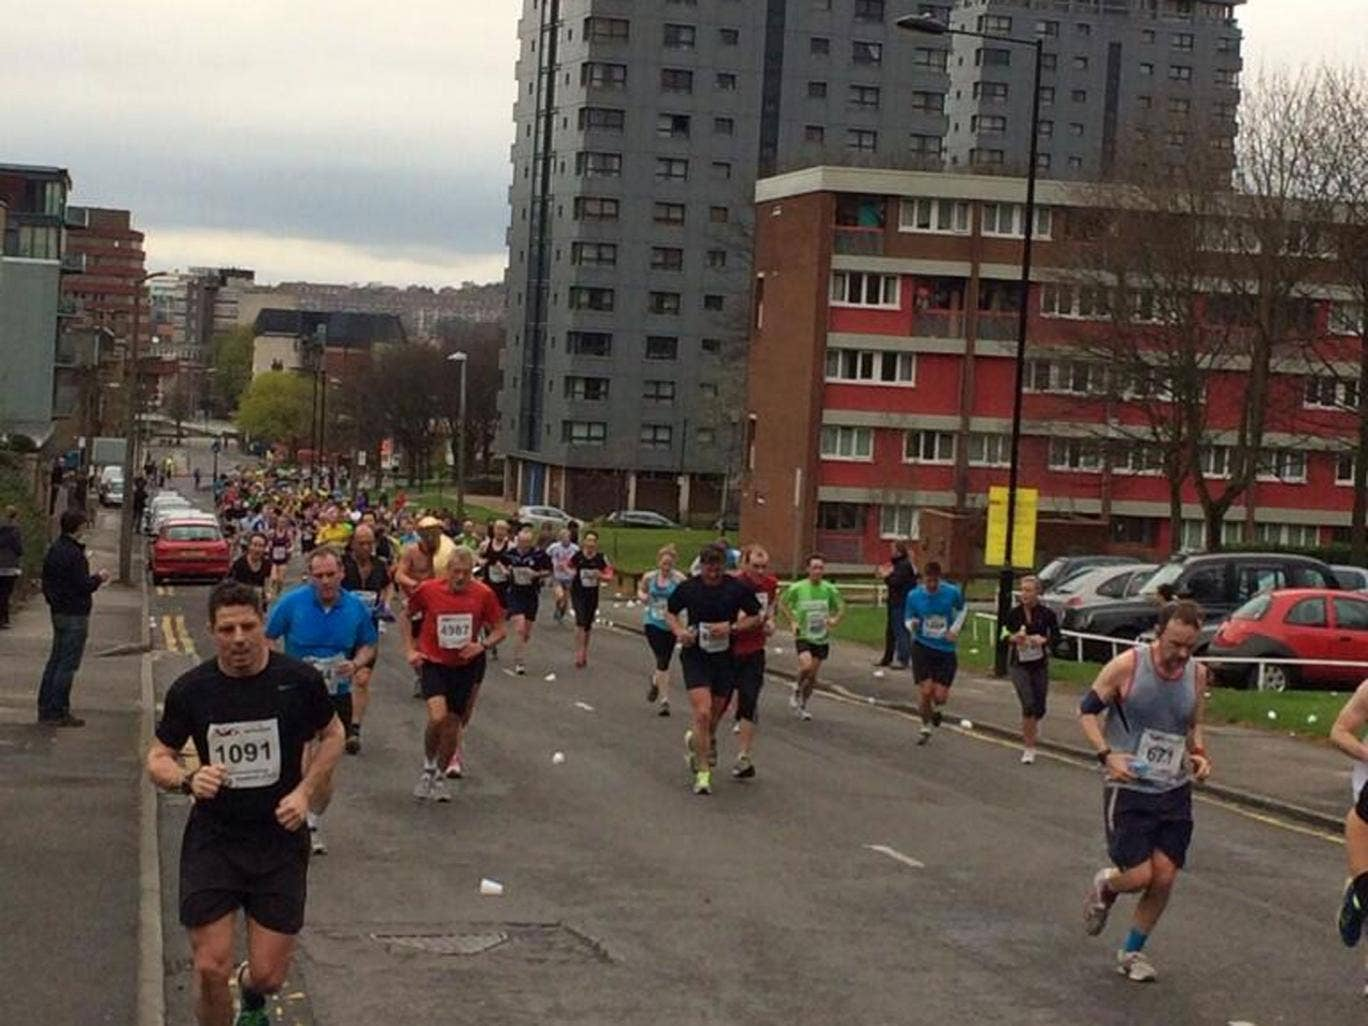 Determined runners pressed on despite the cancellation